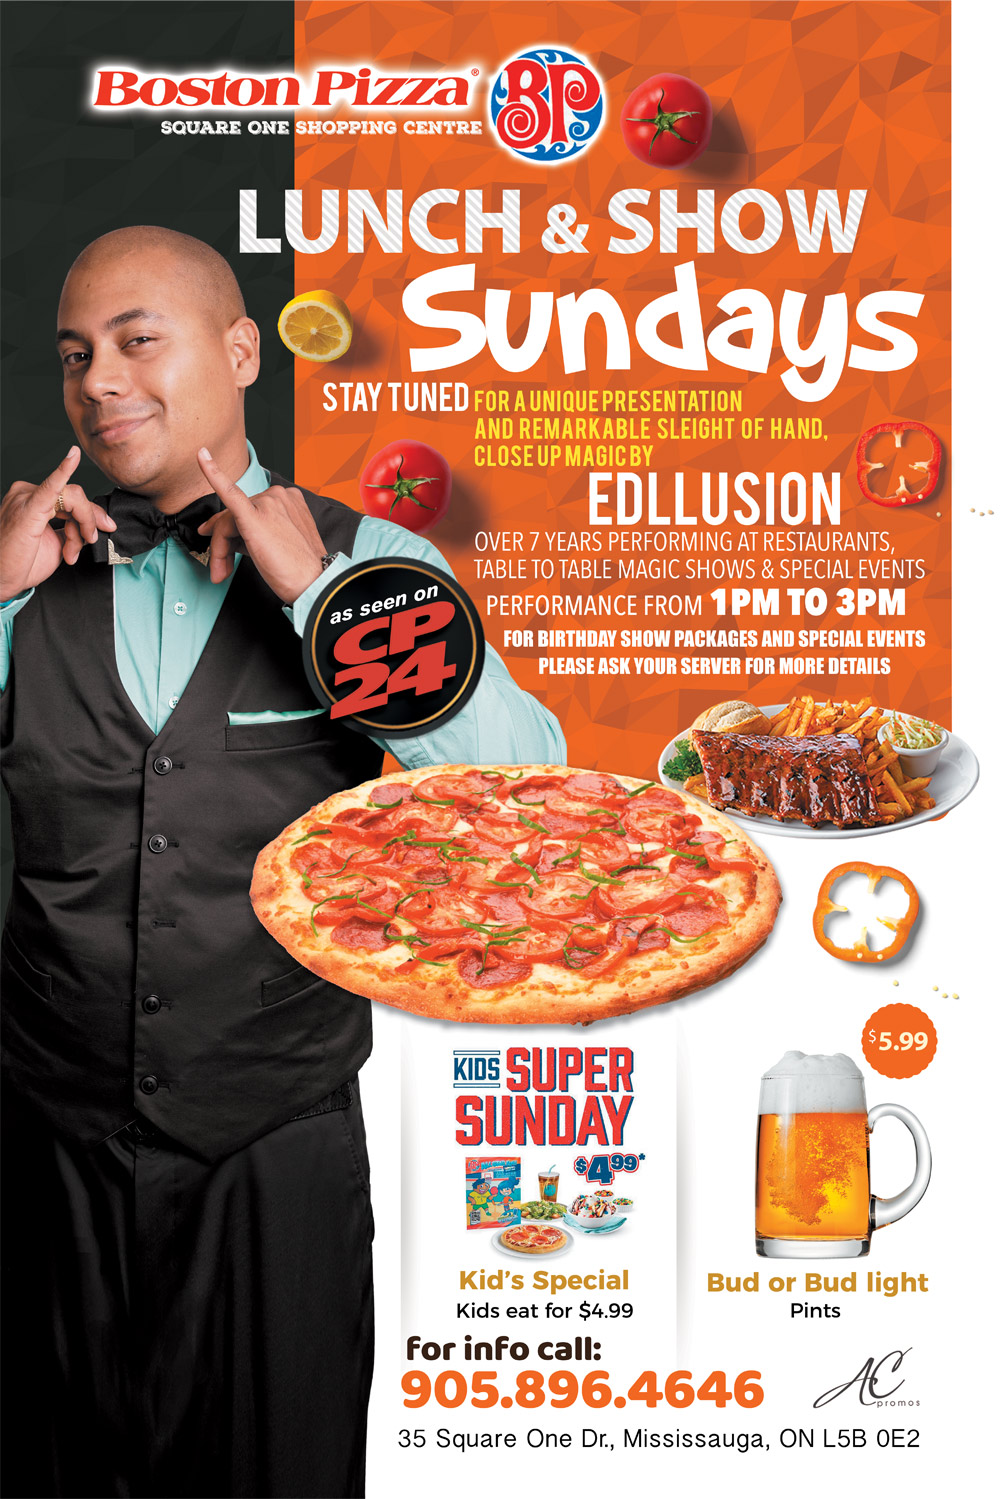 edllusion stand up magic show boston pizza